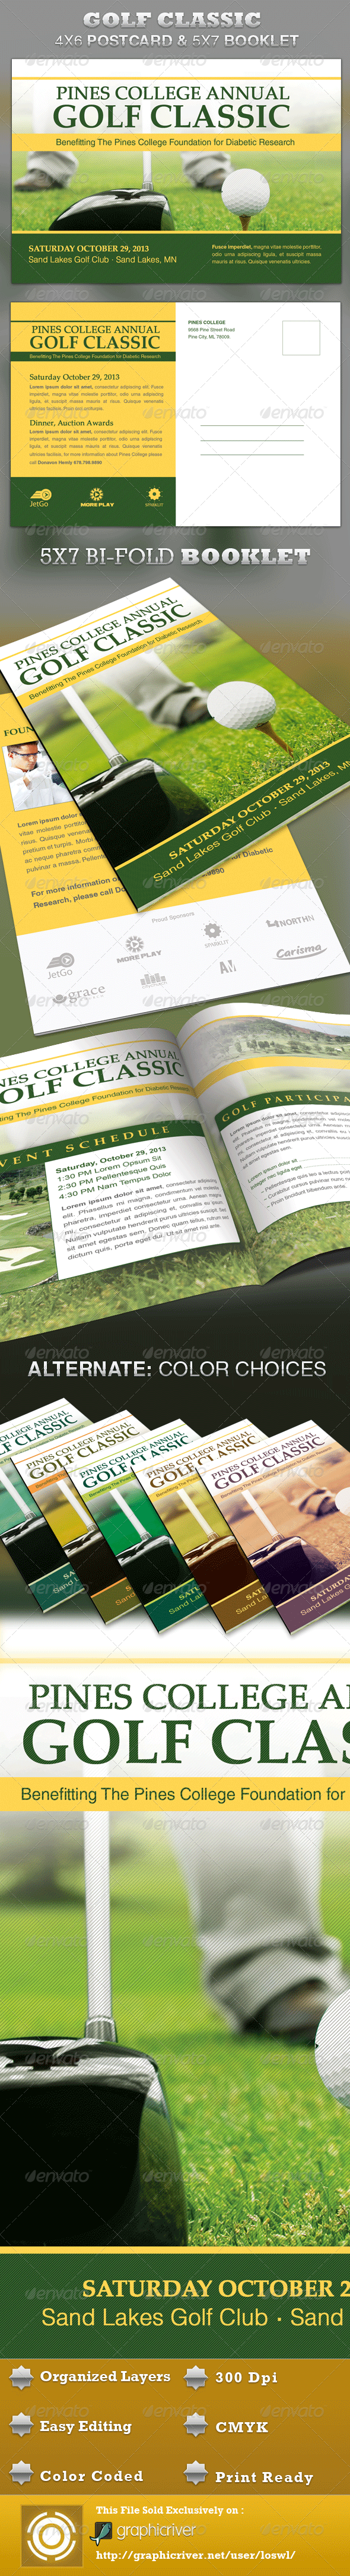 Golf Classic Mailer and Booklet Template - Sports Events